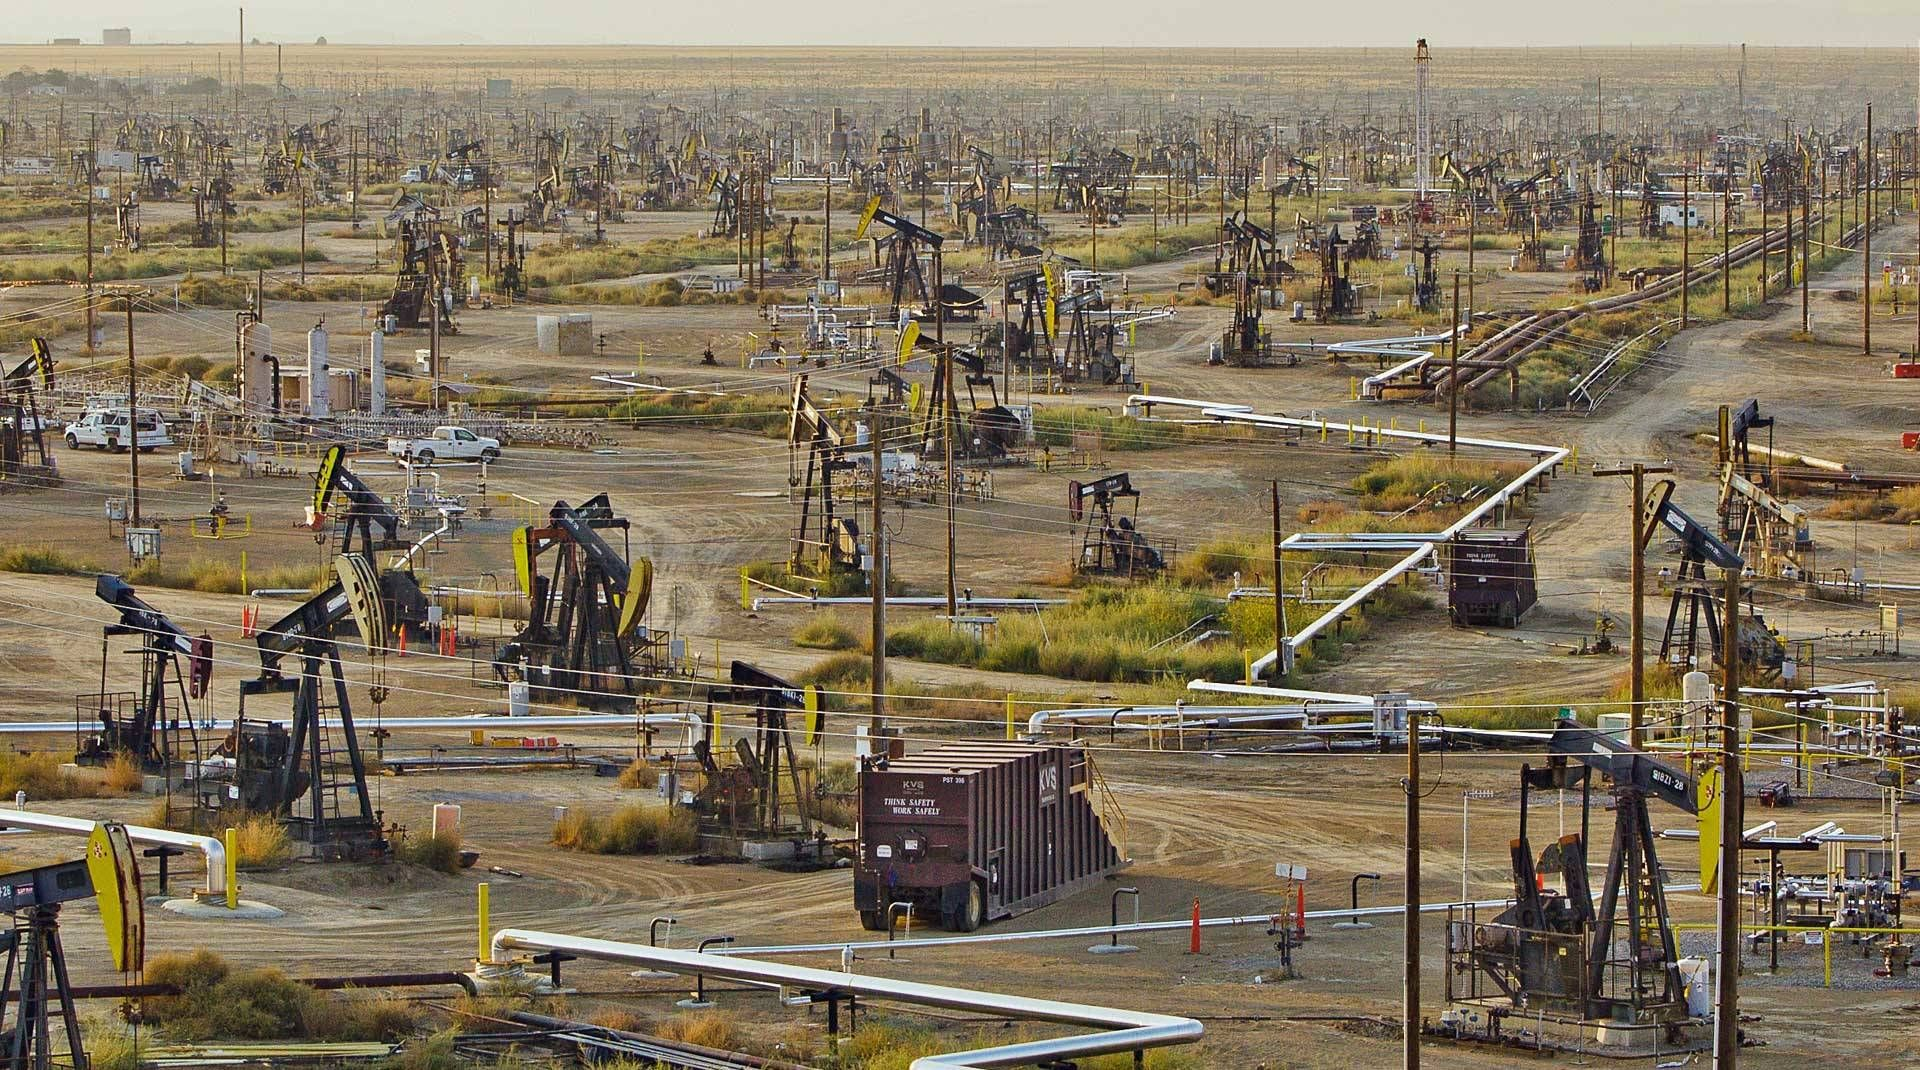 How Much Drinking Water Has California Lost to Oil Industry Waste? No One Knows | KQED Science